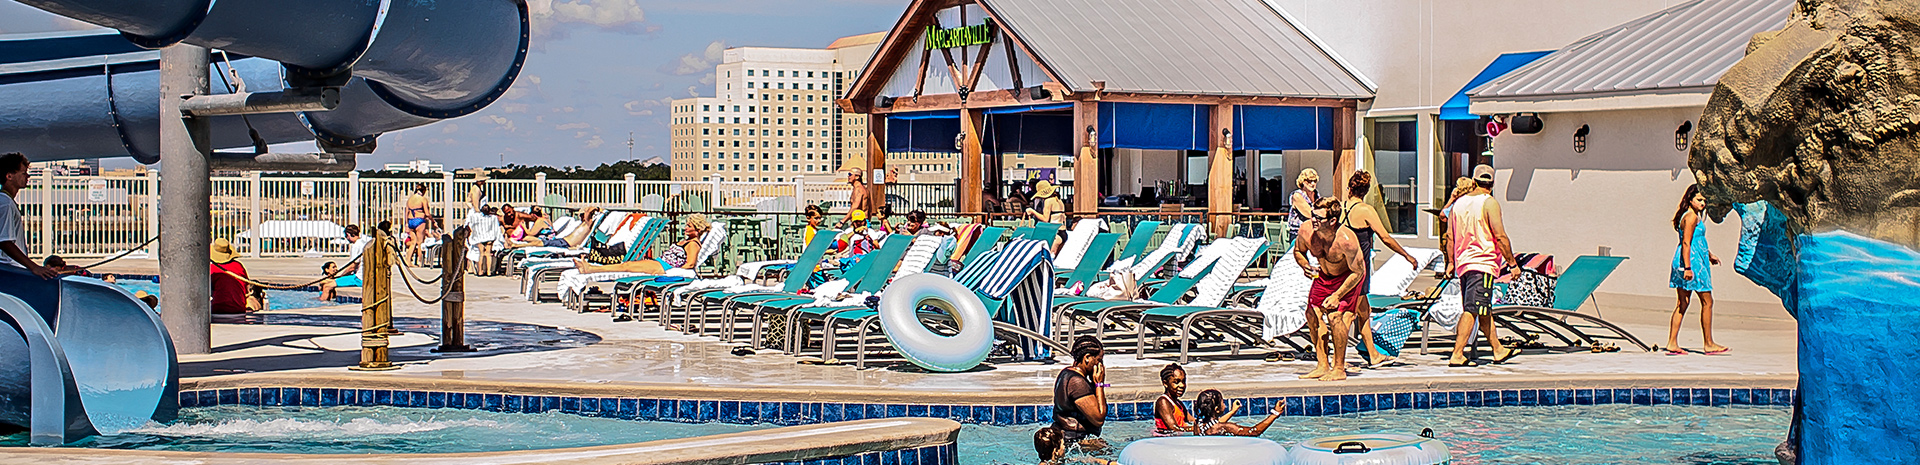 Pool Margaritaville Resort Family Entertainment Center Of